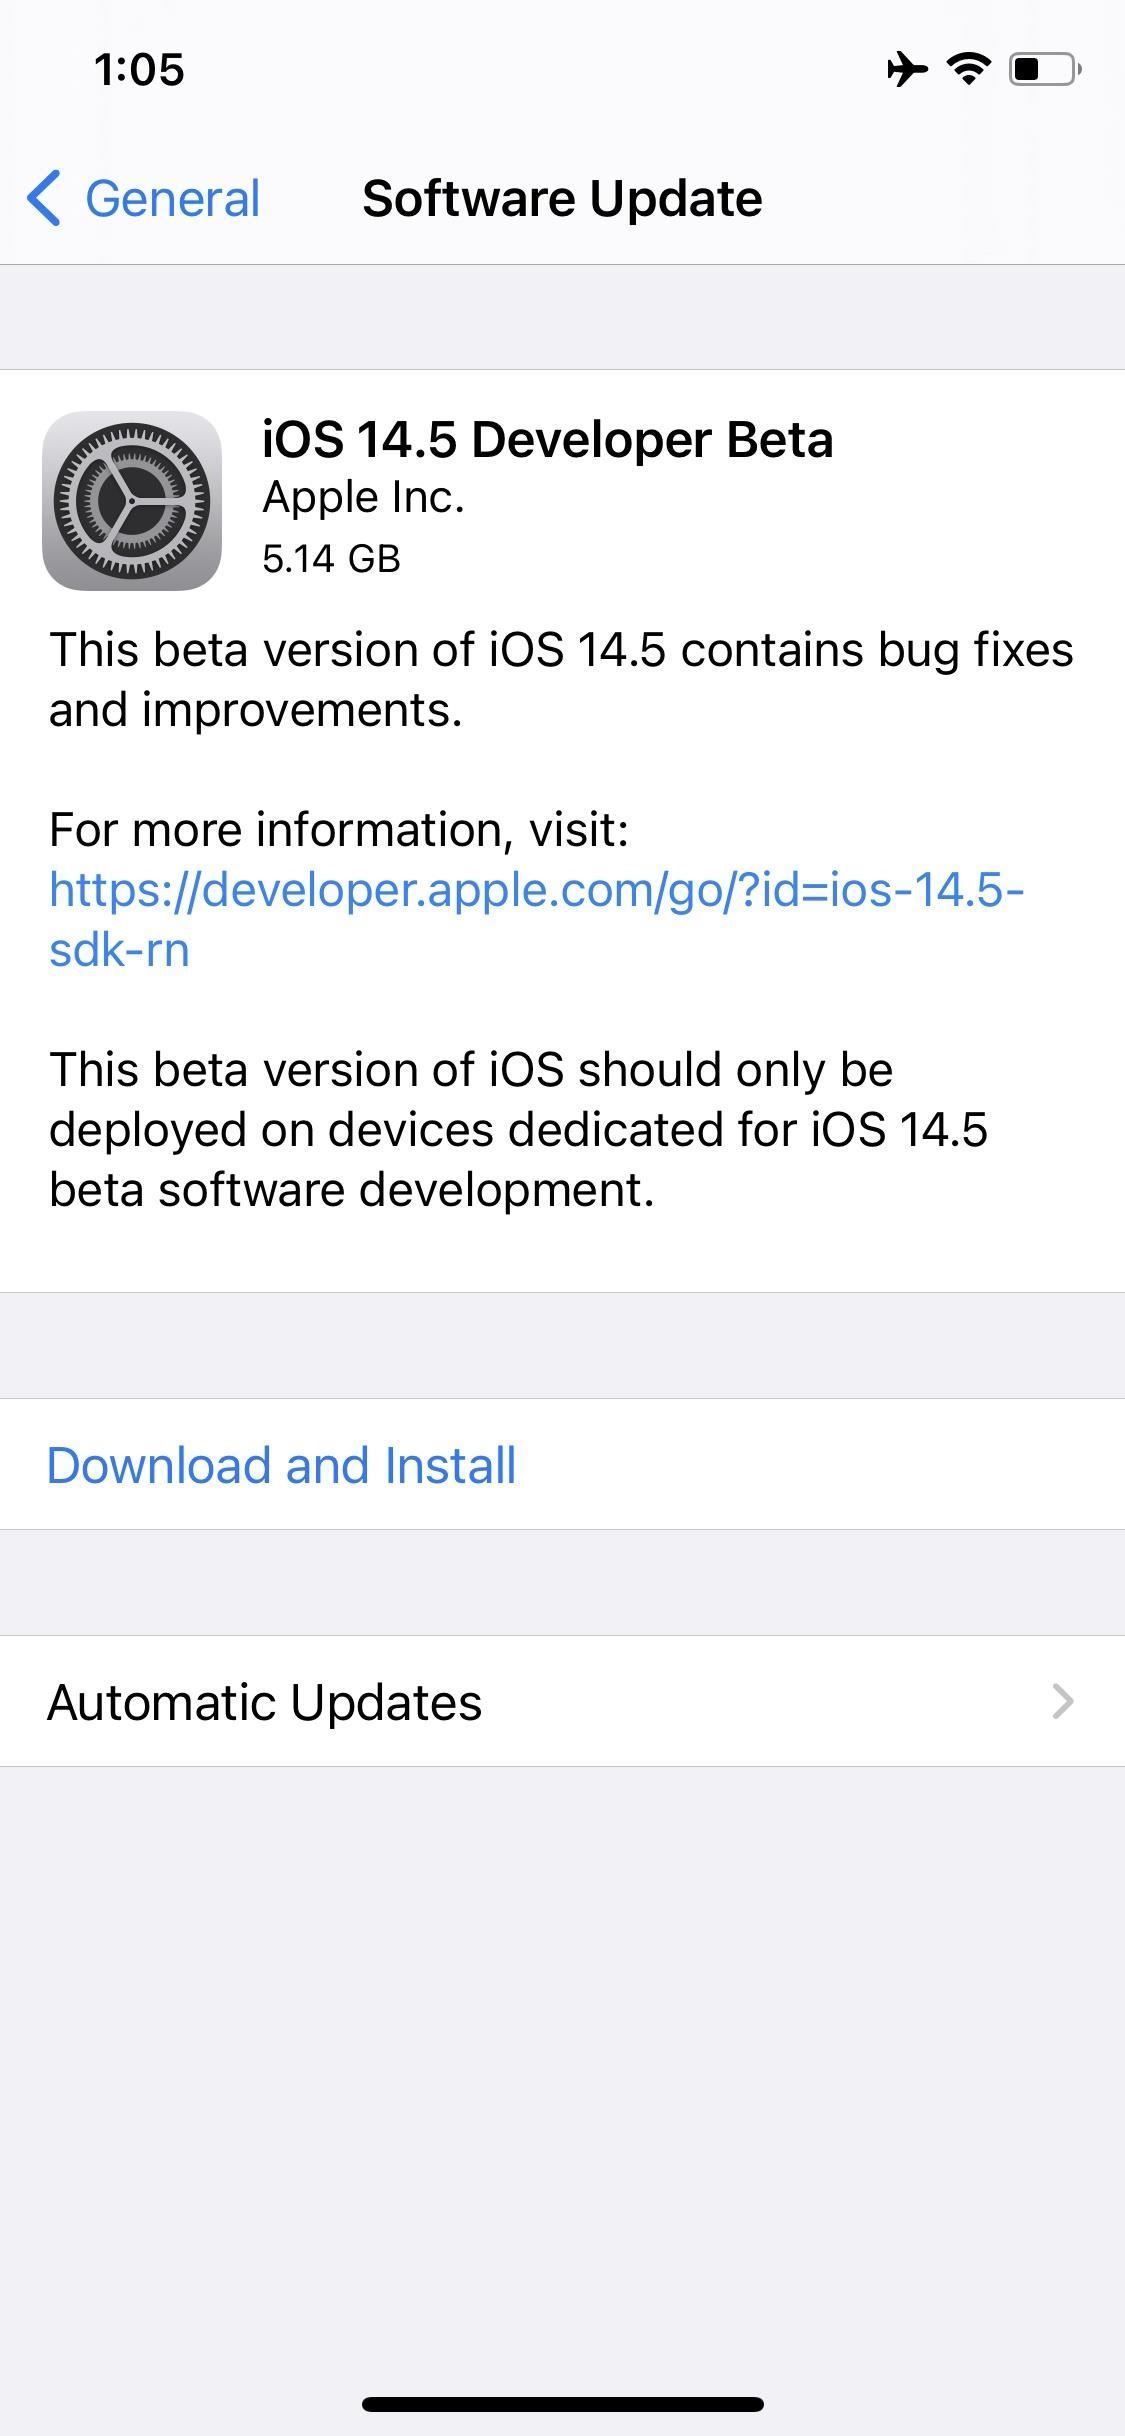 Apple Releases First iOS 14.5 Developer Beta for iPhone, Adds Support for Xbox Series X & PS5 DualSense Controllers